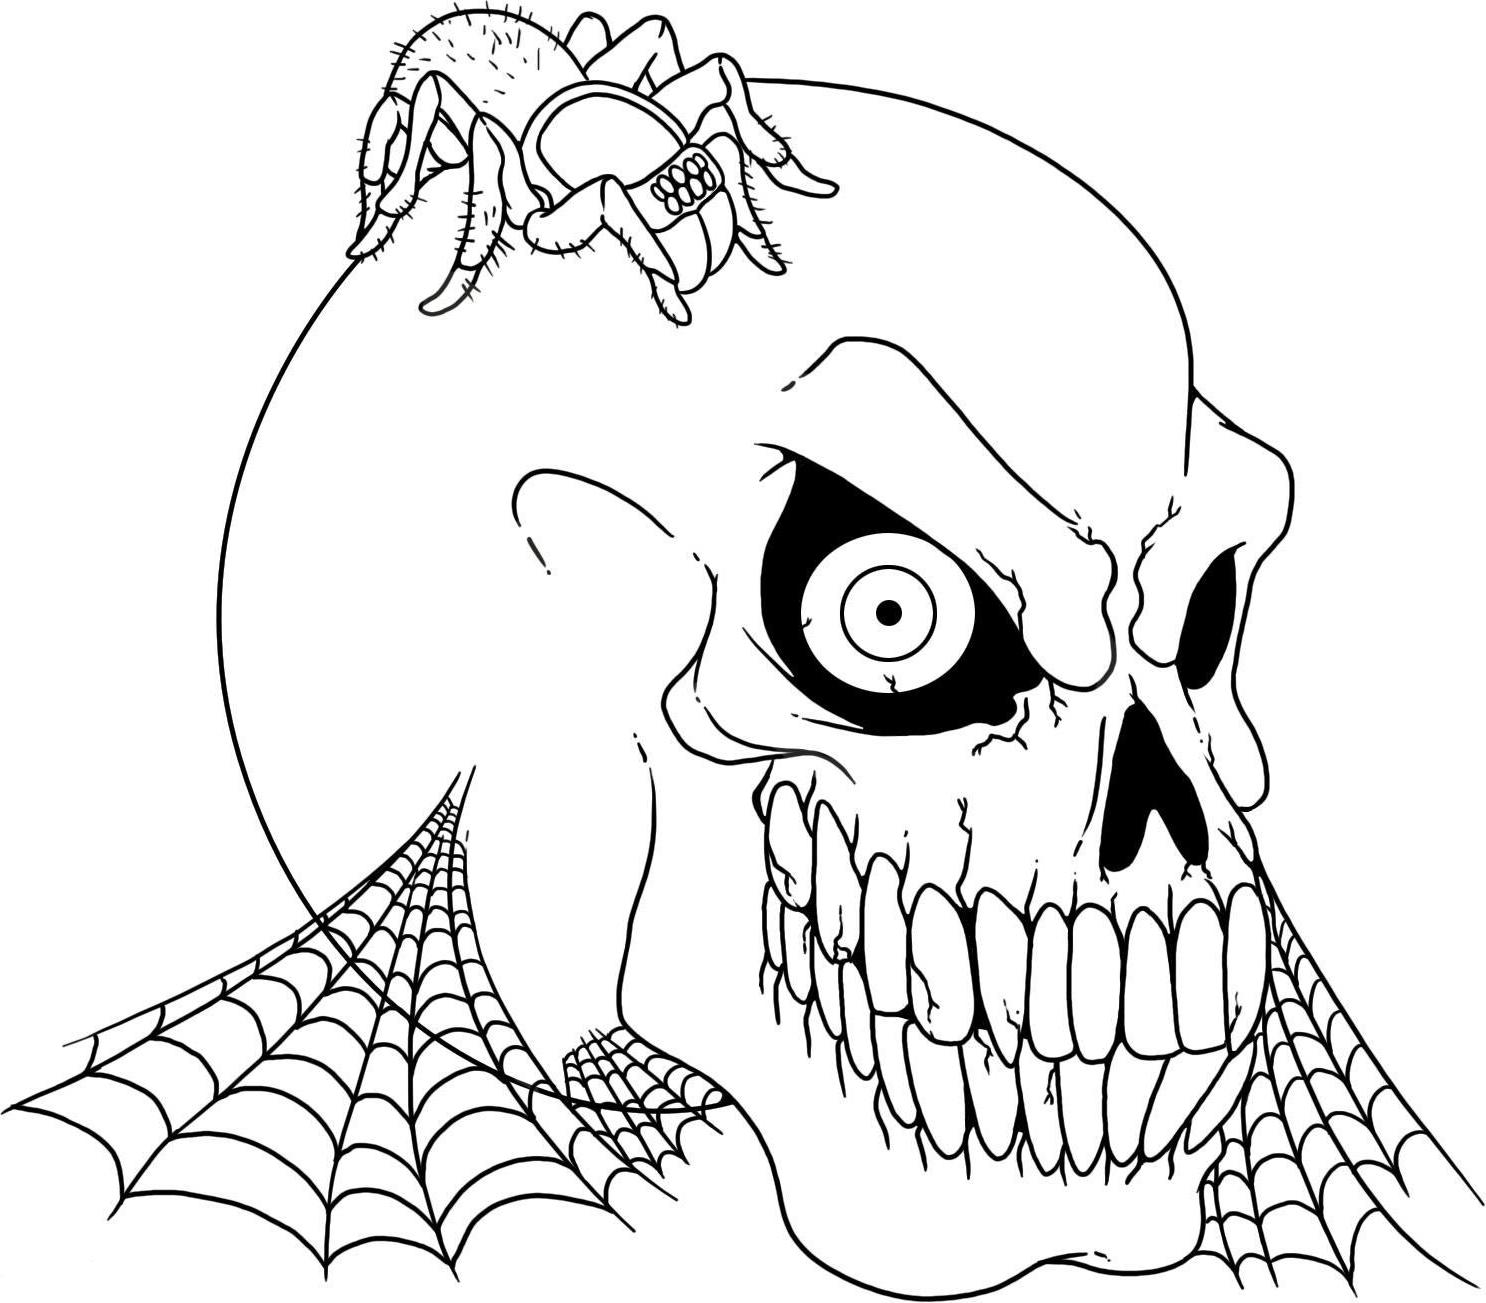 1486x1303 Coloring Pages Appealing Halloween Coloring Pages Online Scary